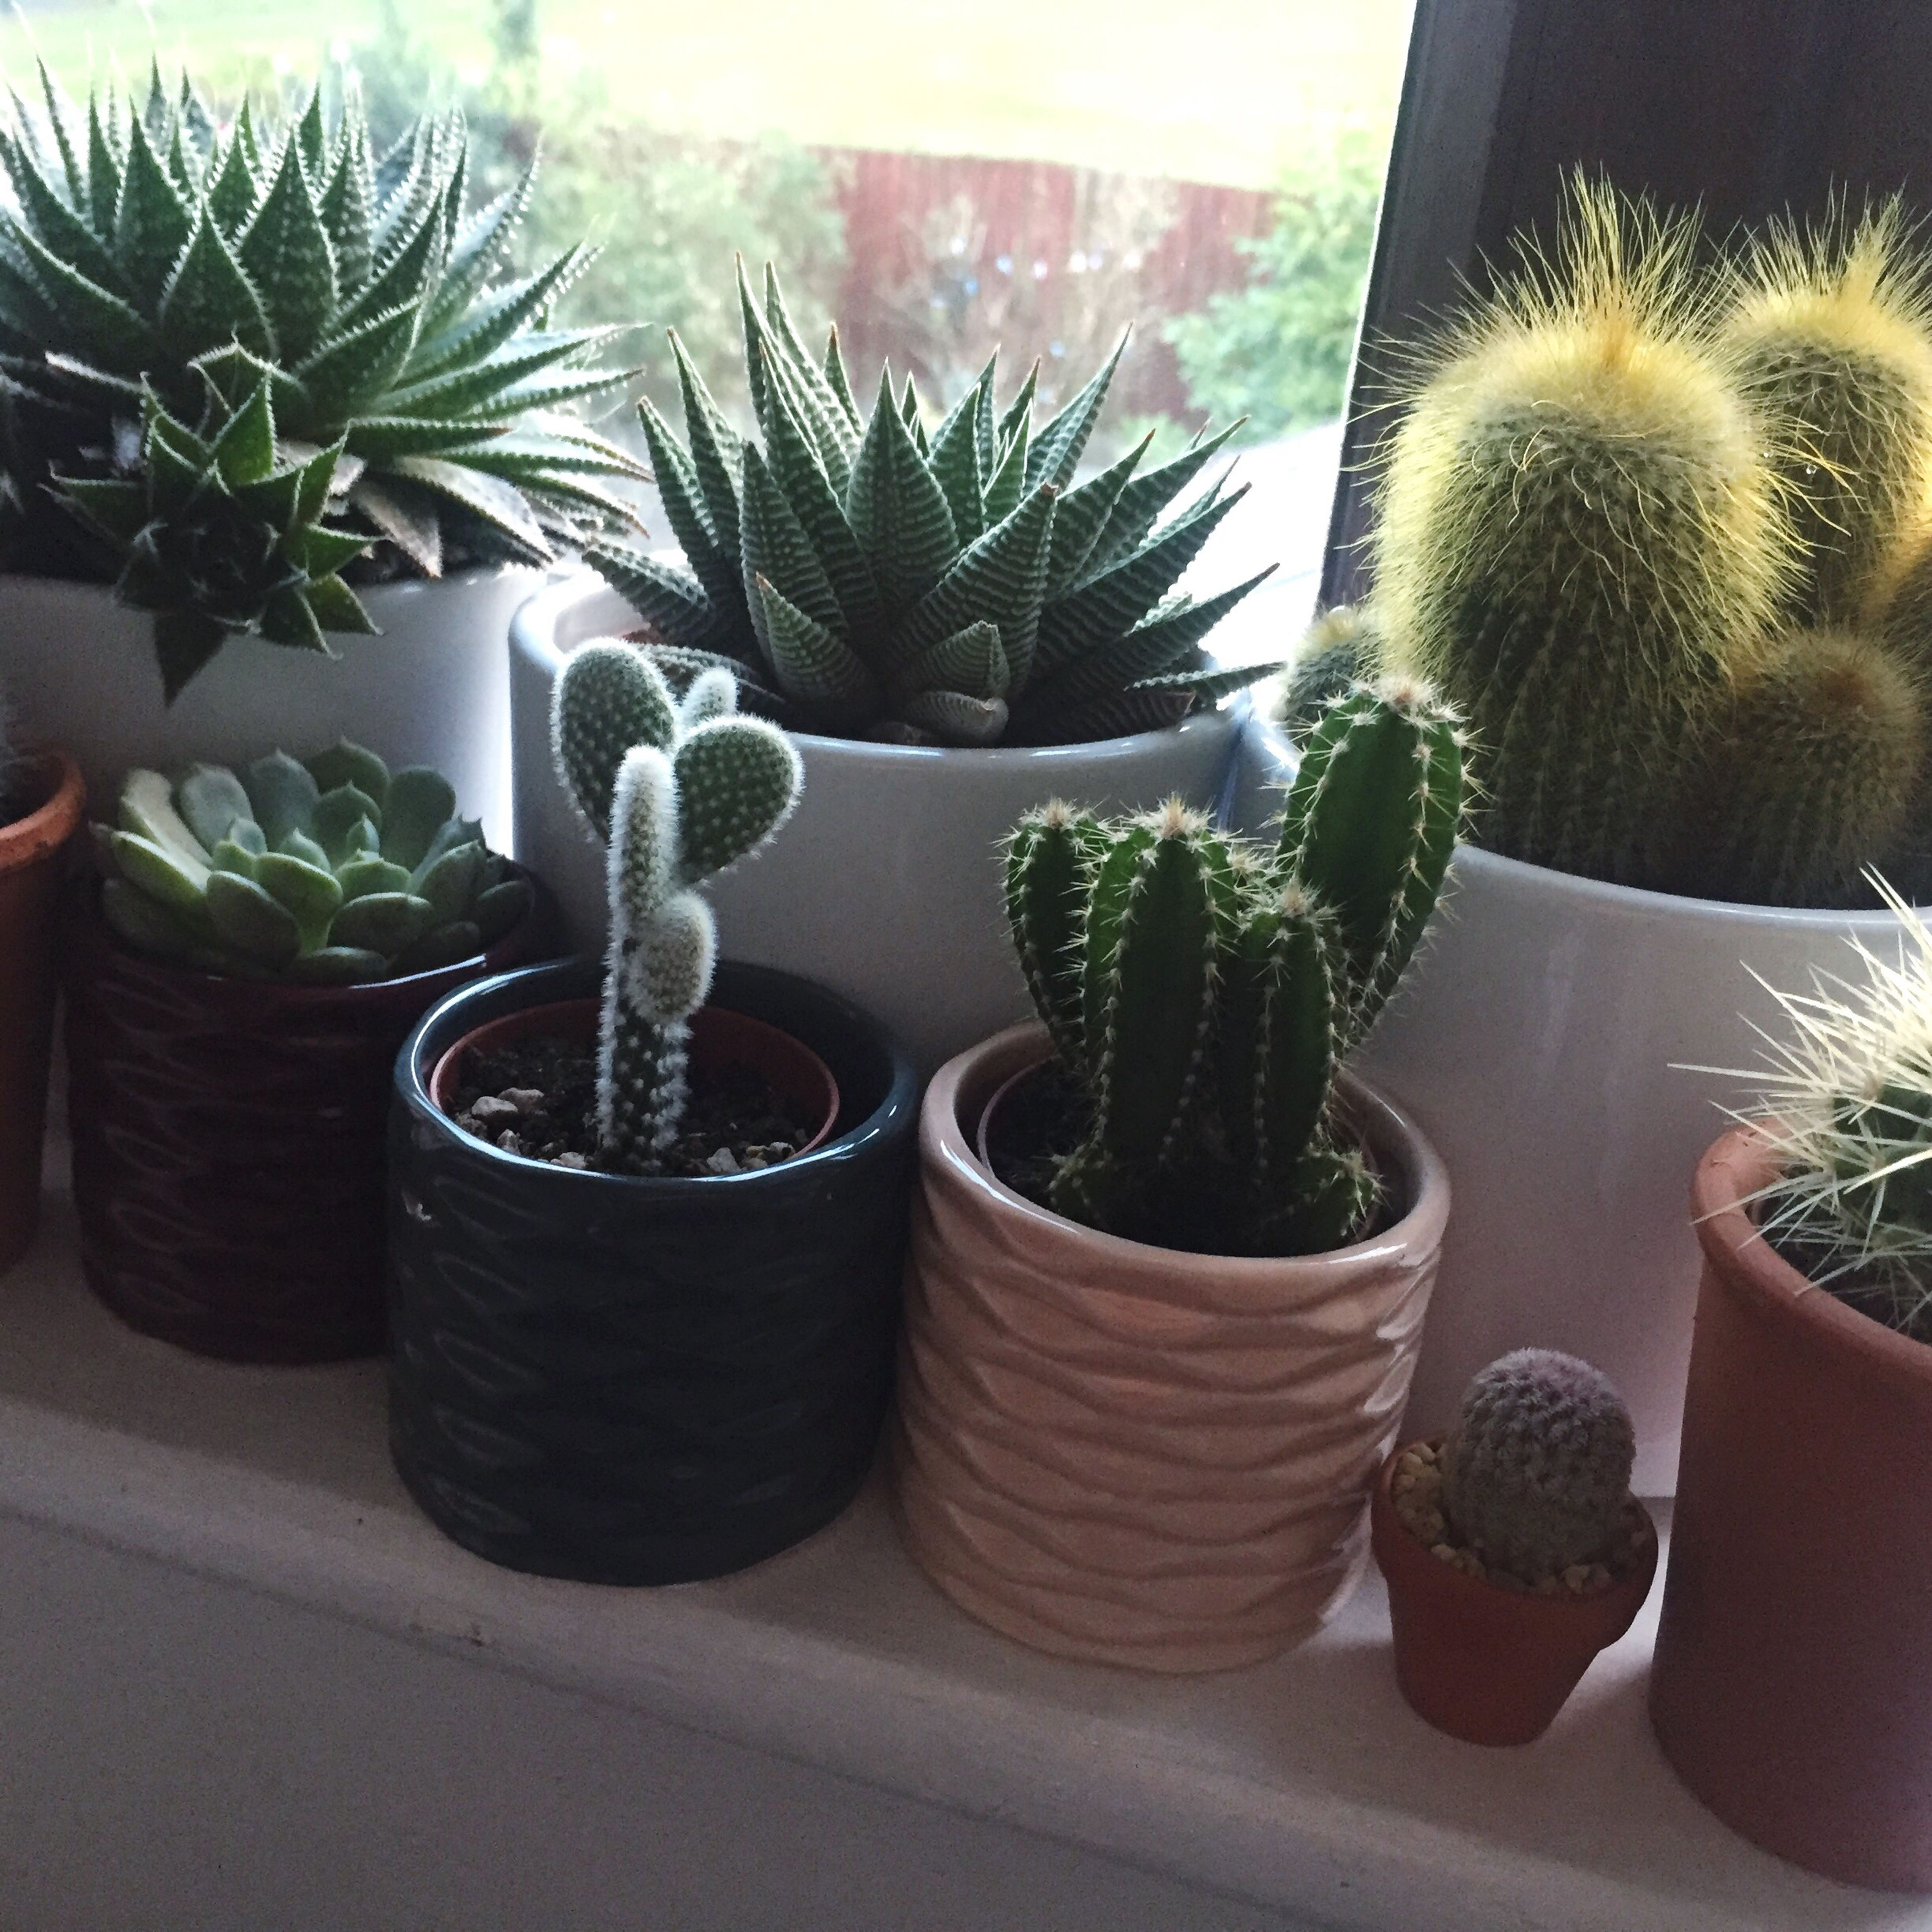 plant, potted plant, growth, cactus, thorn, indoors, spiked, sharp, houseplant, flower pot, natural pattern, succulent plant, close-up, nature, window sill, needle - plant part, variation, day, growing, pot plant, focus on foreground, botany, green, arid climate, plants, house plant, no people